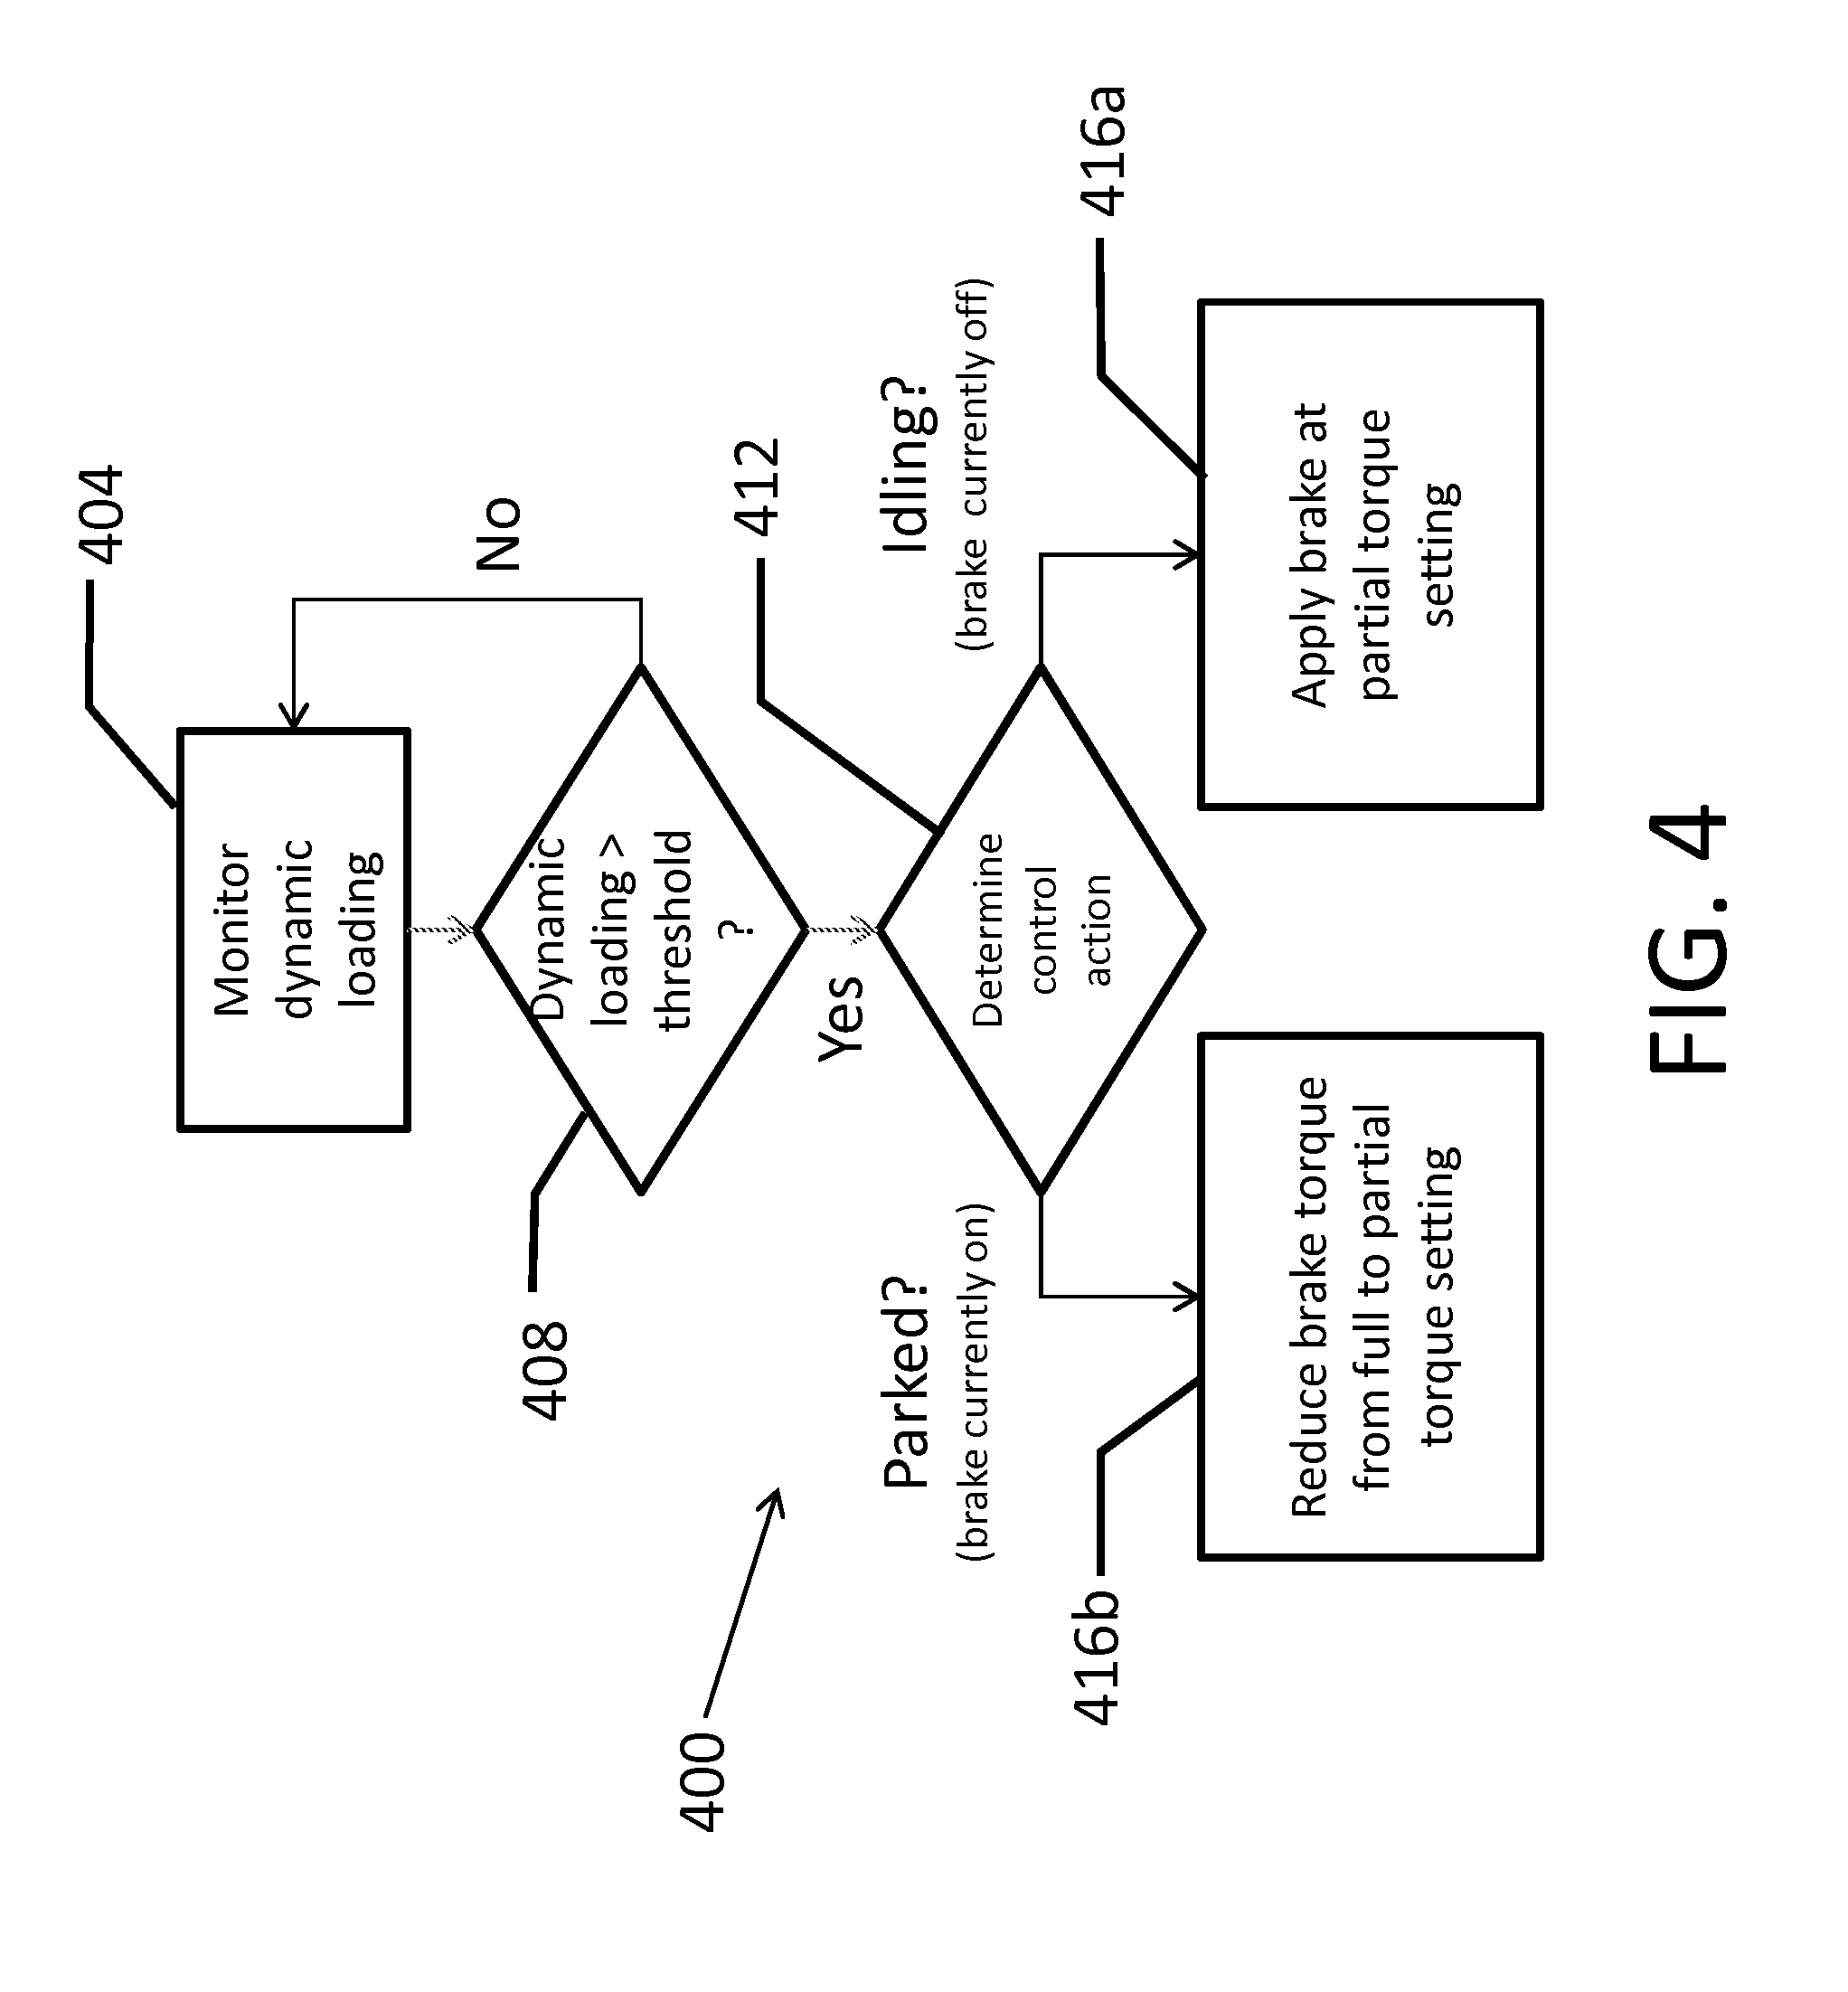 Dynamic Braking Unit Circuit Search For Wiring Diagrams Resistor Diagram Patent Us8816520 Systems Load Reduction In A Tower System Locomotives